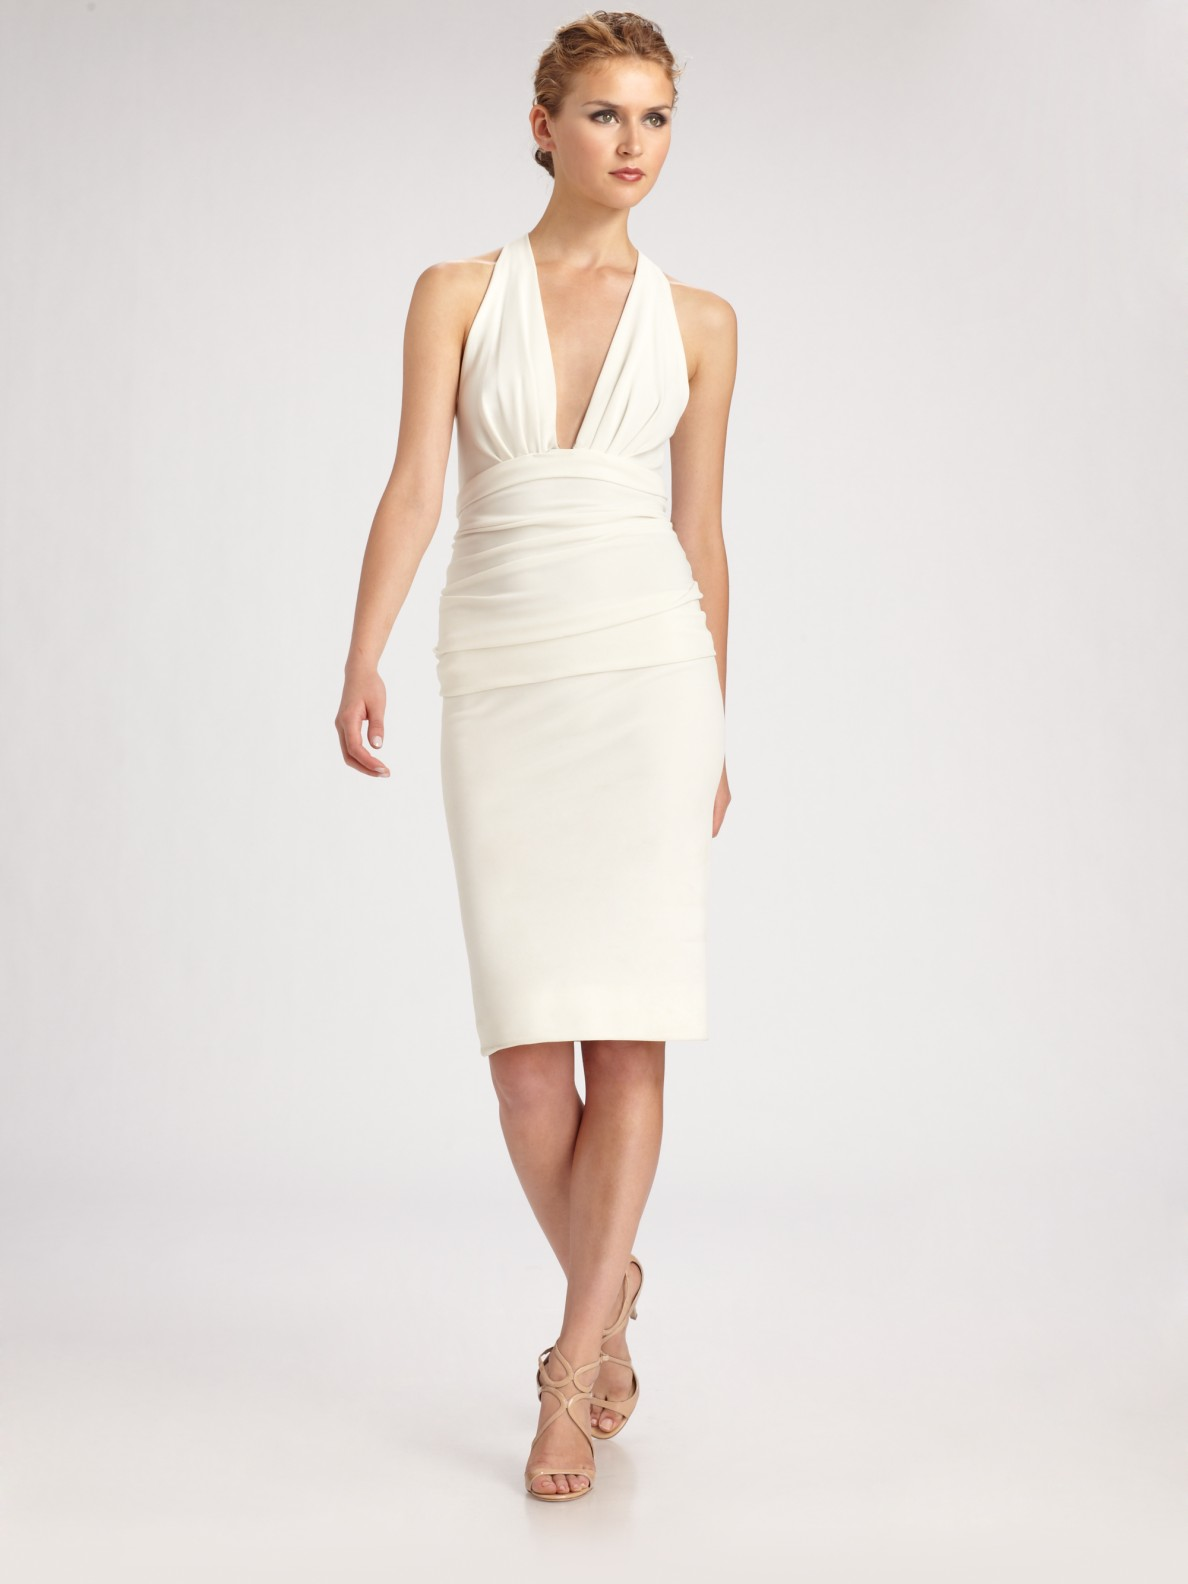 Lyst Donna Karan Crepe Jersey Halter Dress In White